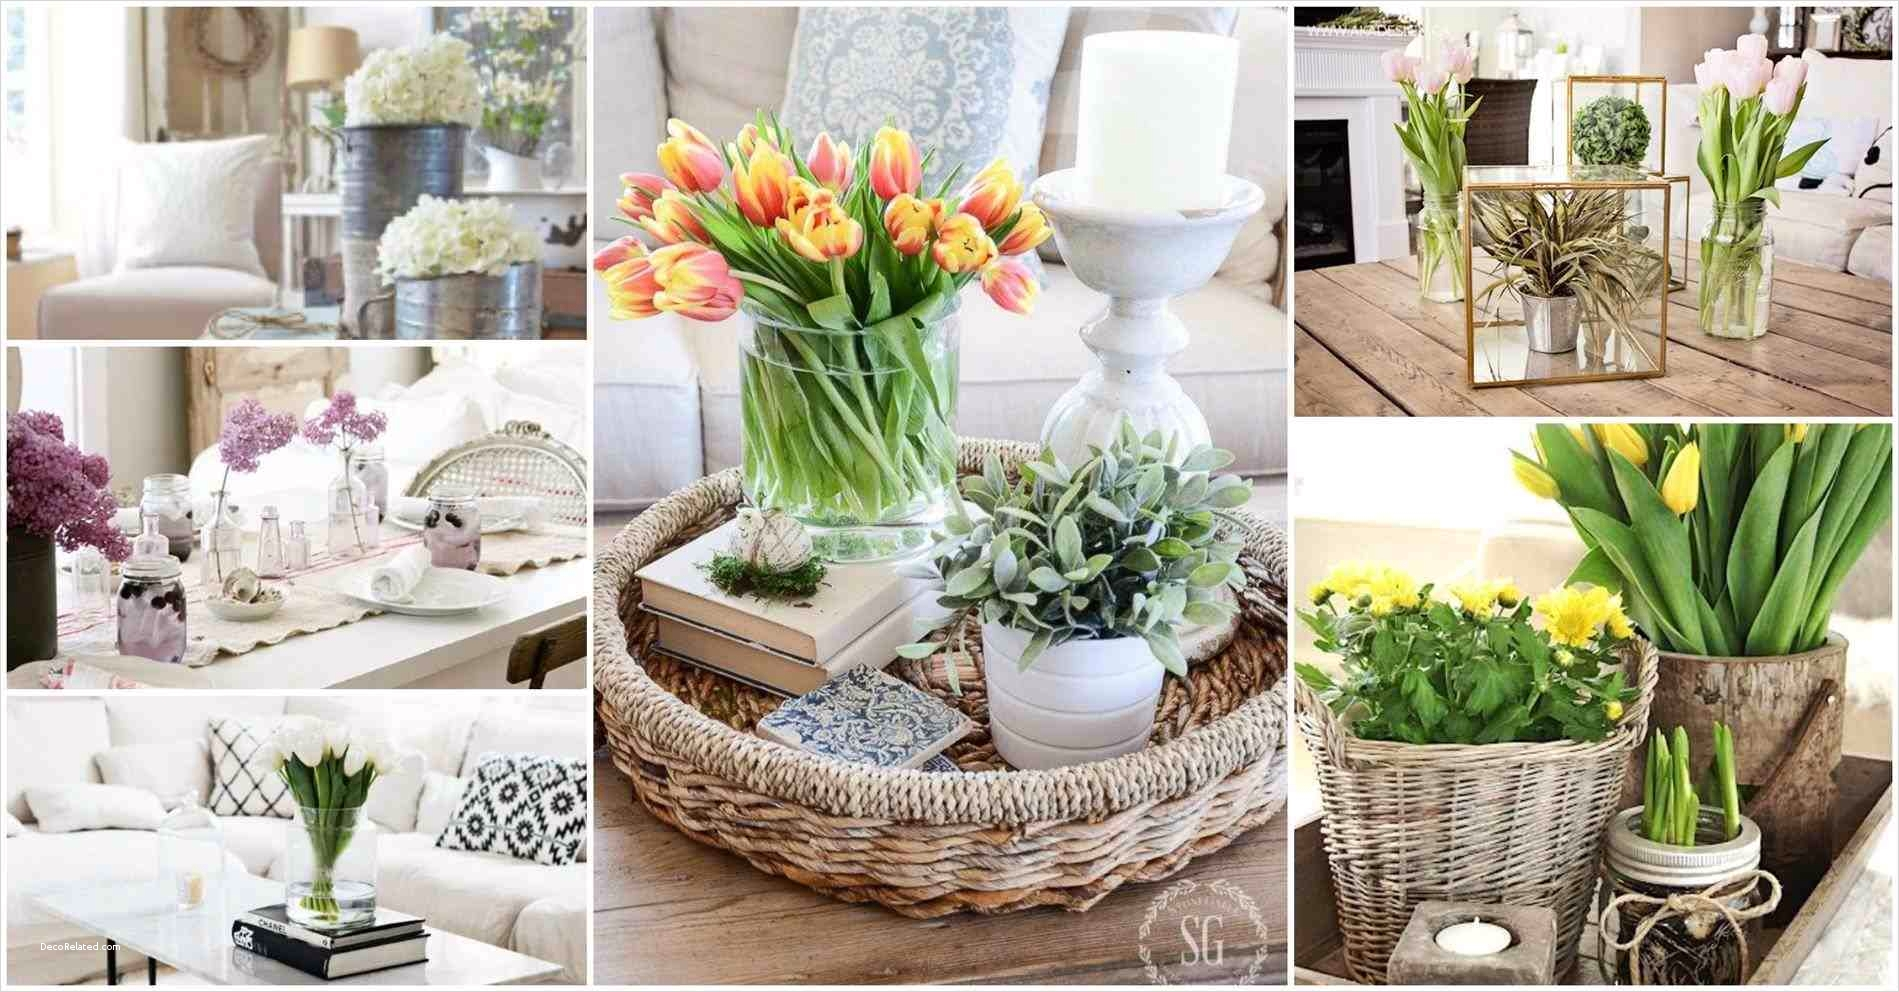 Spring Floral Bedroom Decor 15 the Collection Of Decorations Decor Ideas Brunch Best Flowers and Floral Arrangements 8